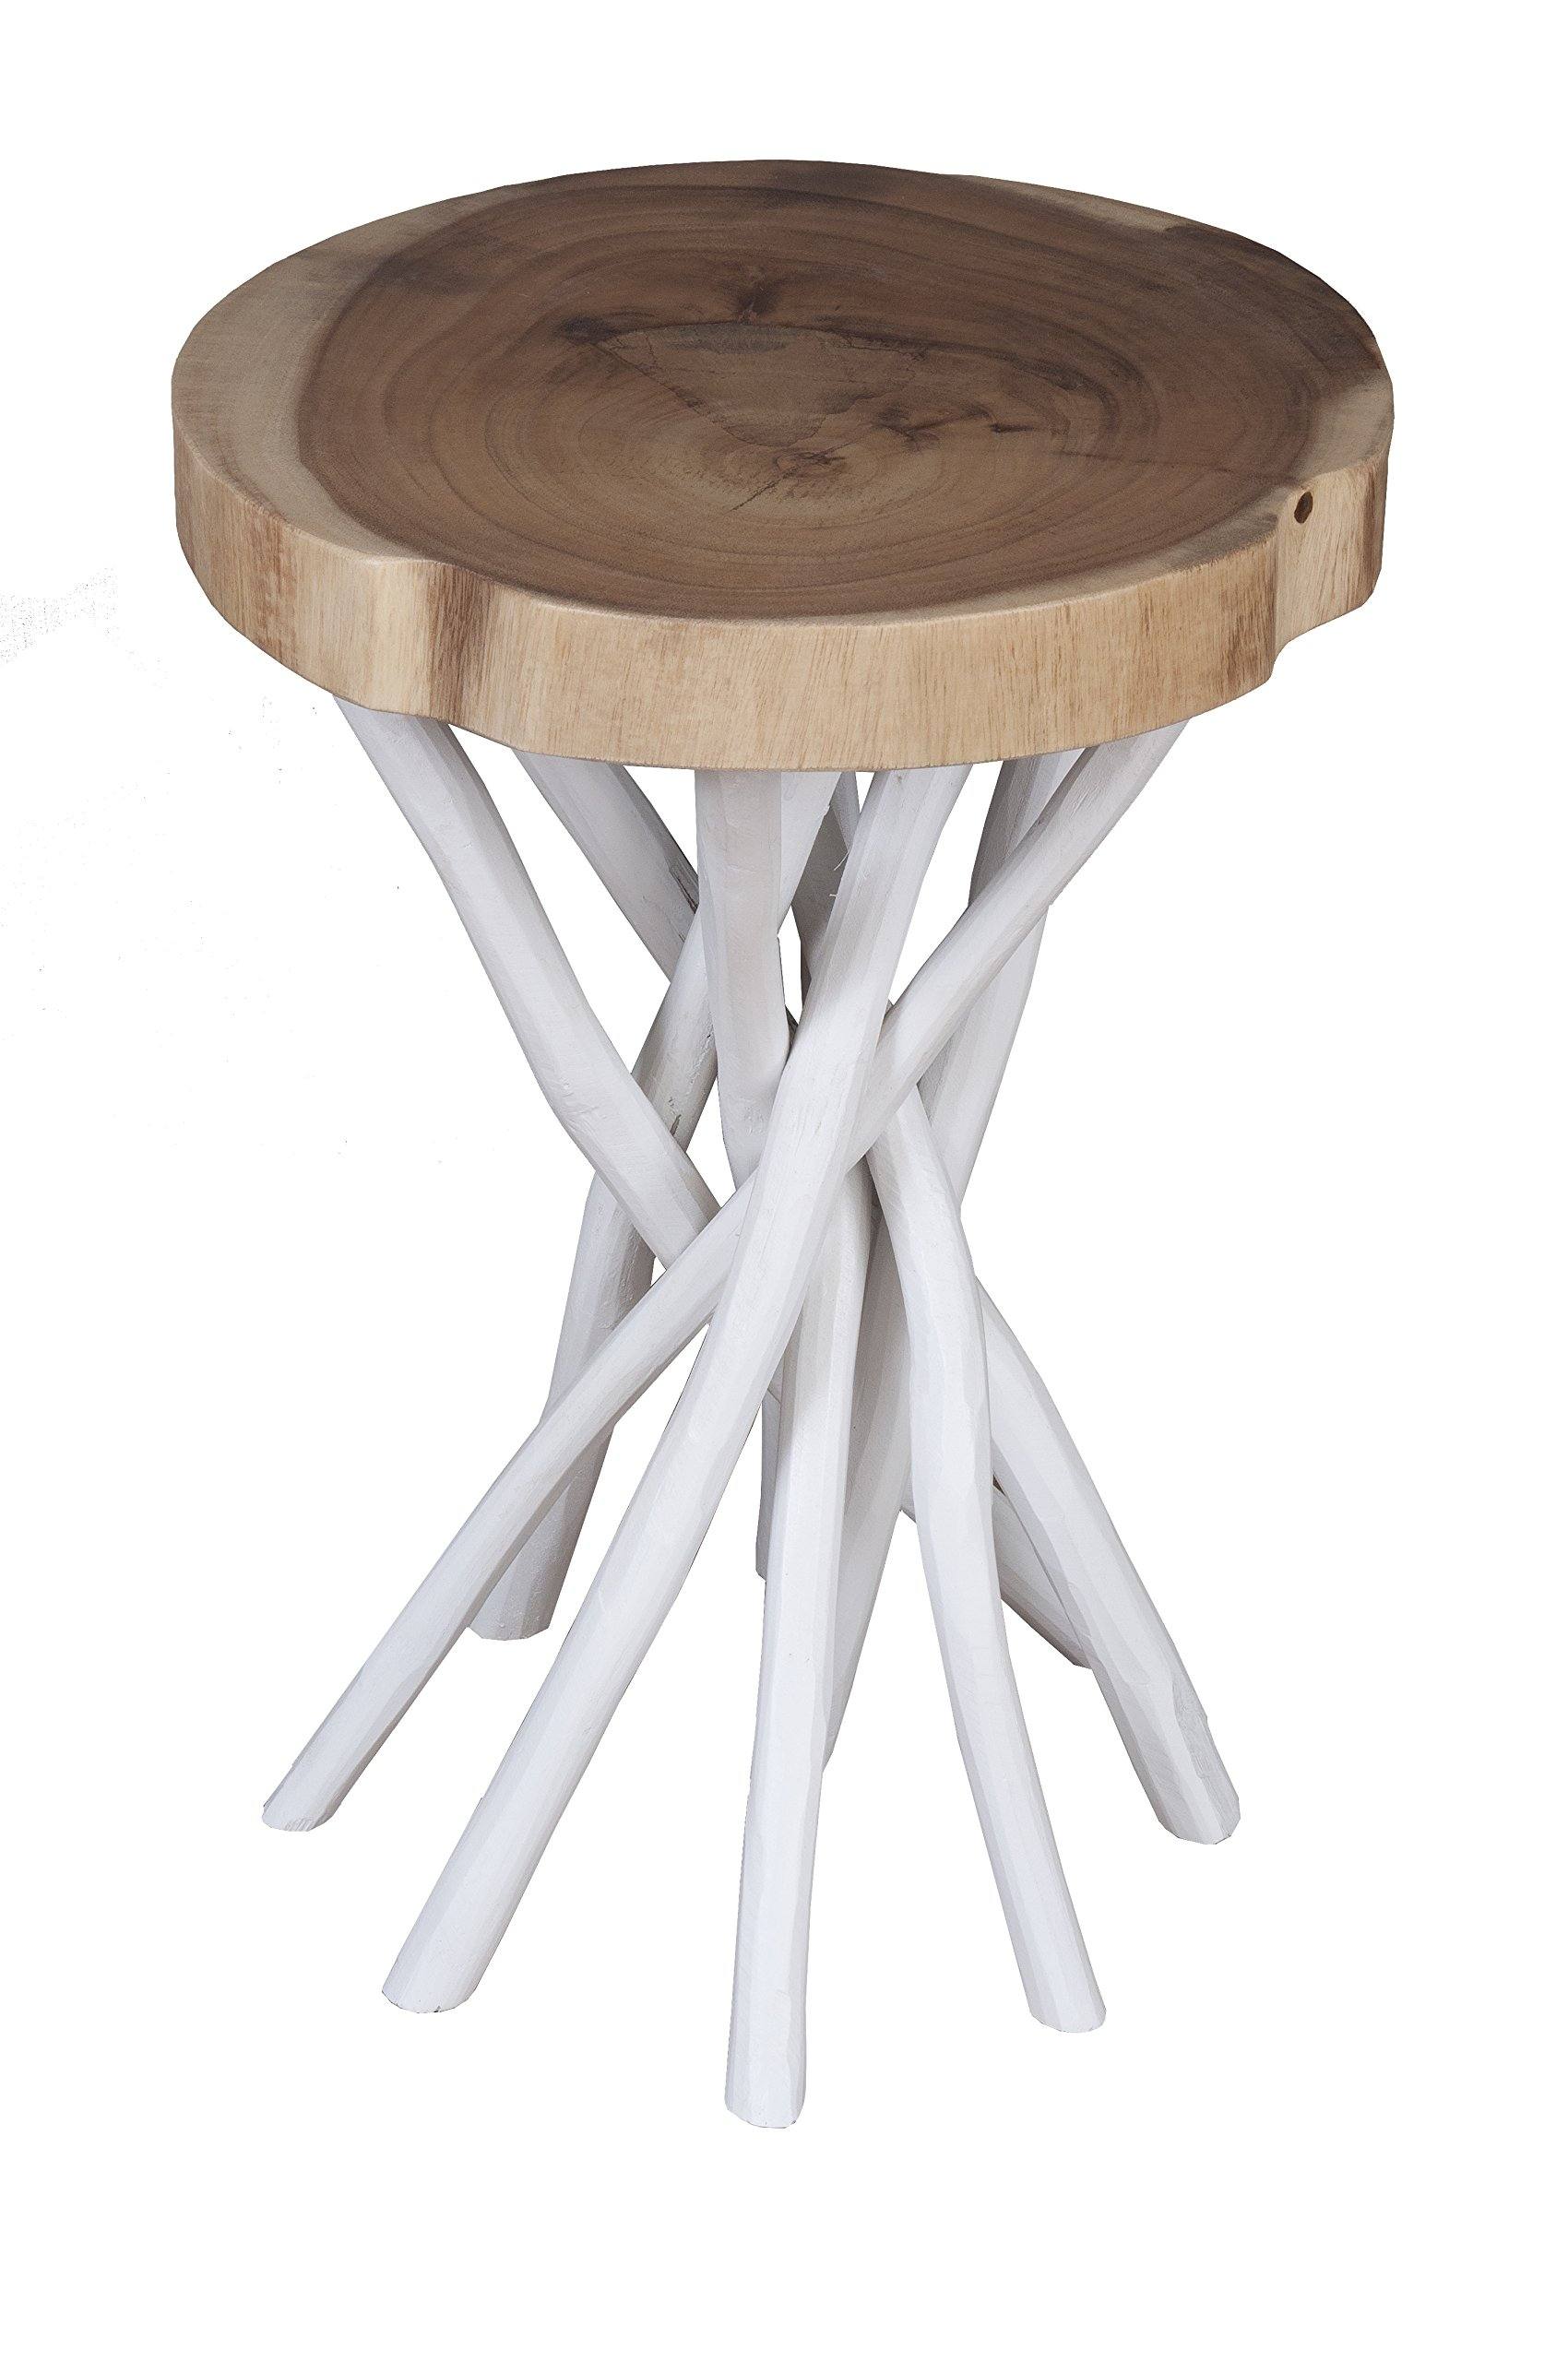 East at Main Kenton Teakwood White Round Accent Table, (14x14x20) by East At Main (Image #1)